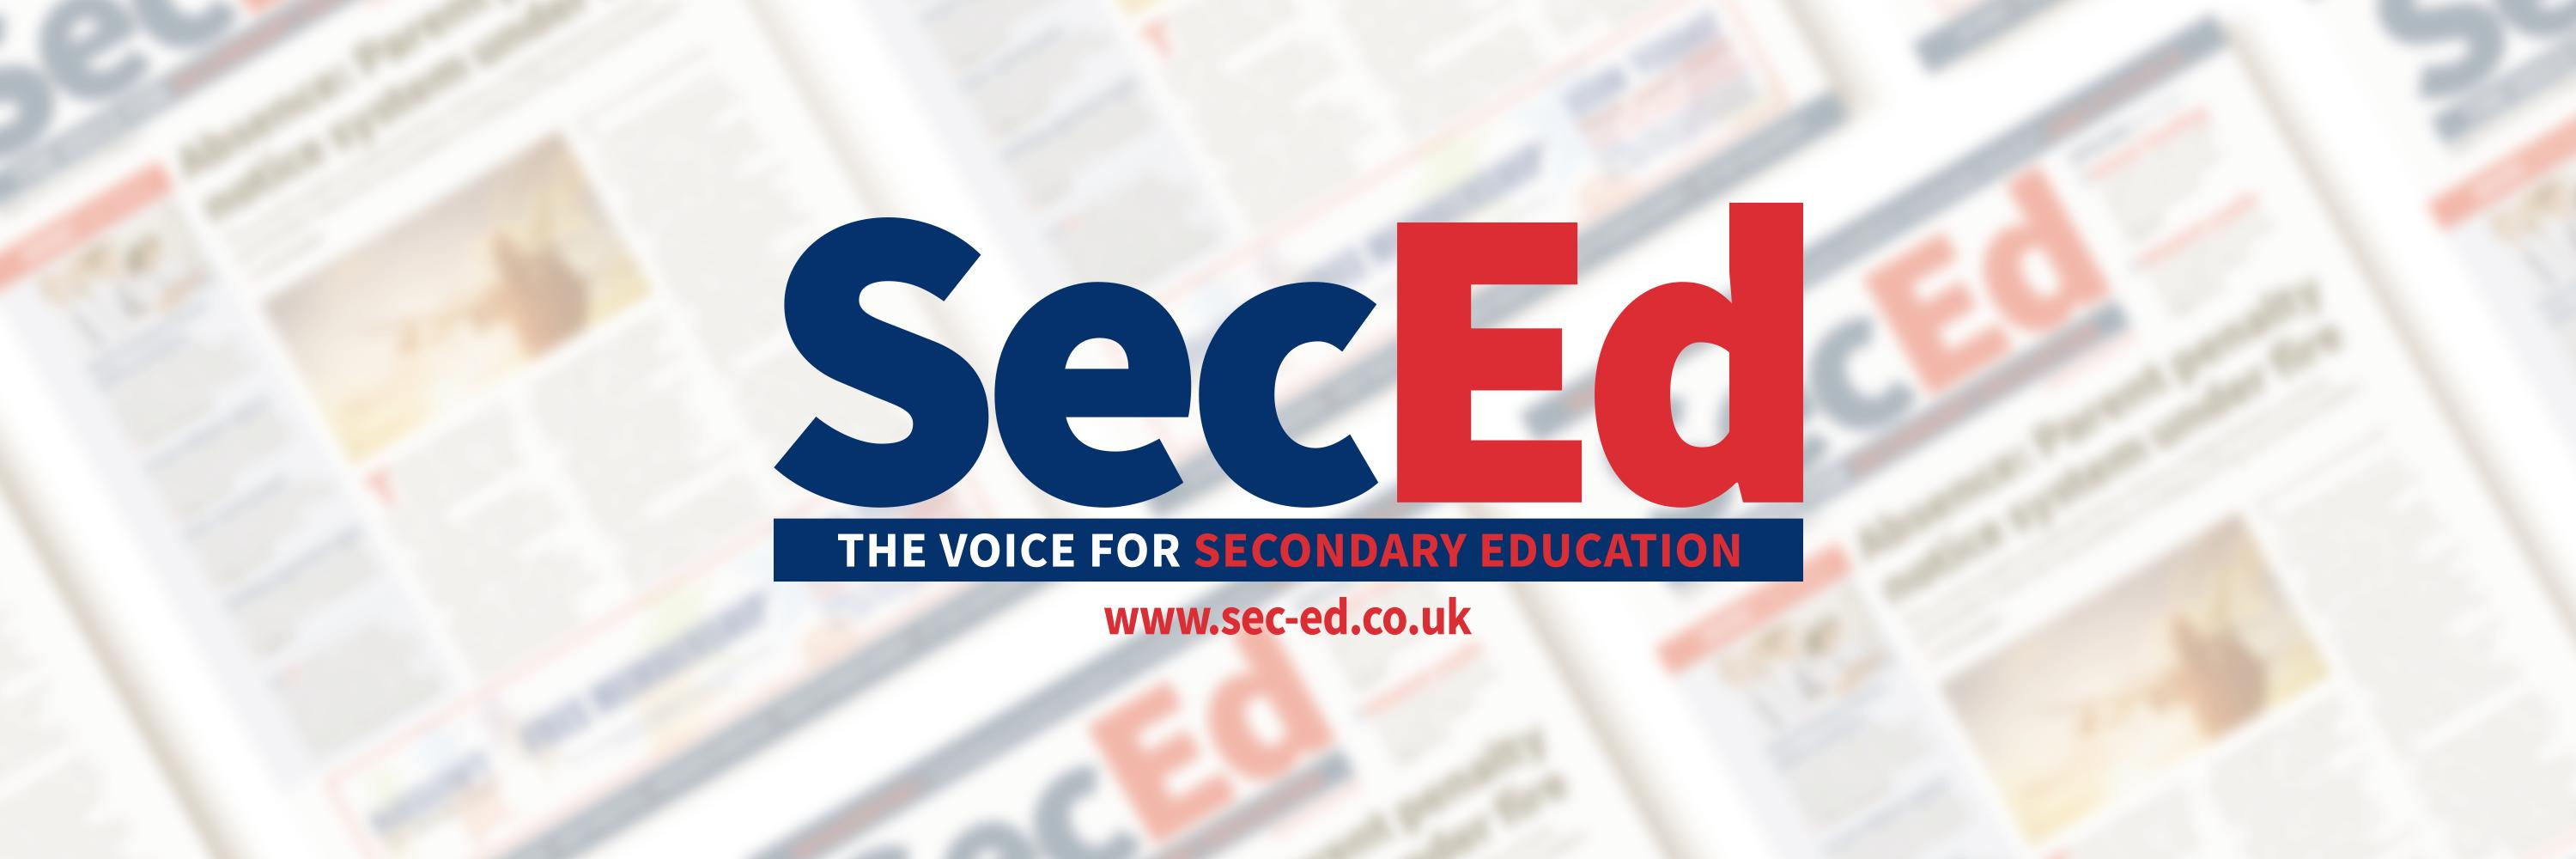 The SecEd Podcast: New episode: Digital strategy & #technology in schools. Effective planning, procurement & deploy… https://t.co/9sBHmWehG5